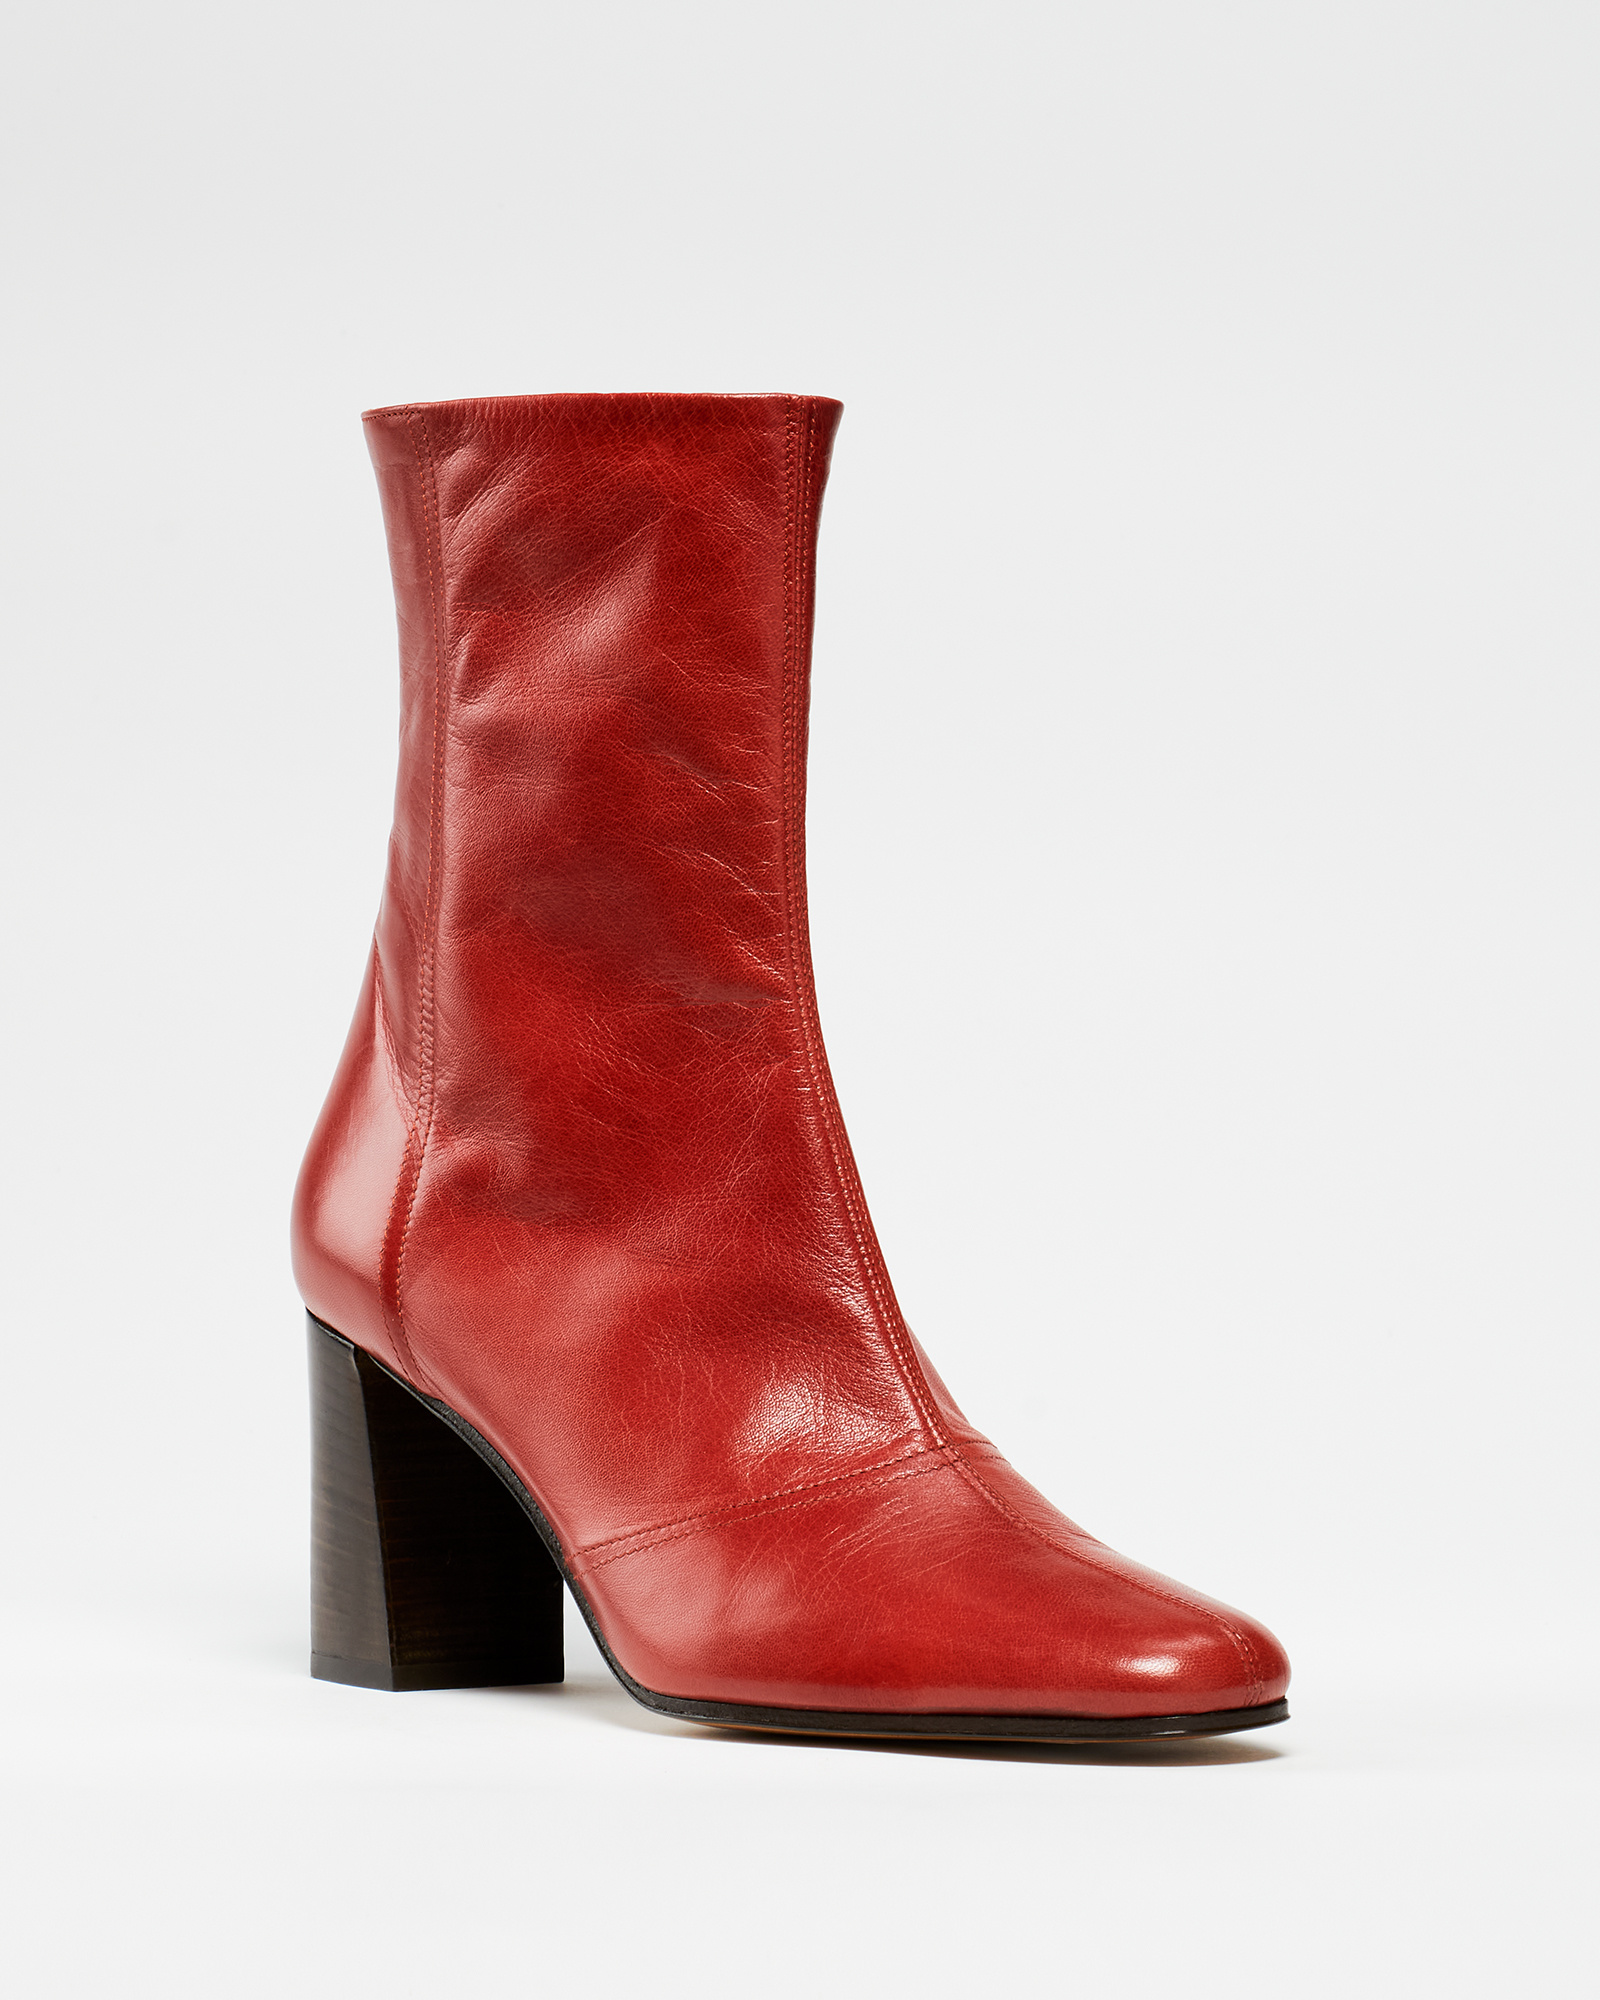 Fame Boots Red Laque de Chine